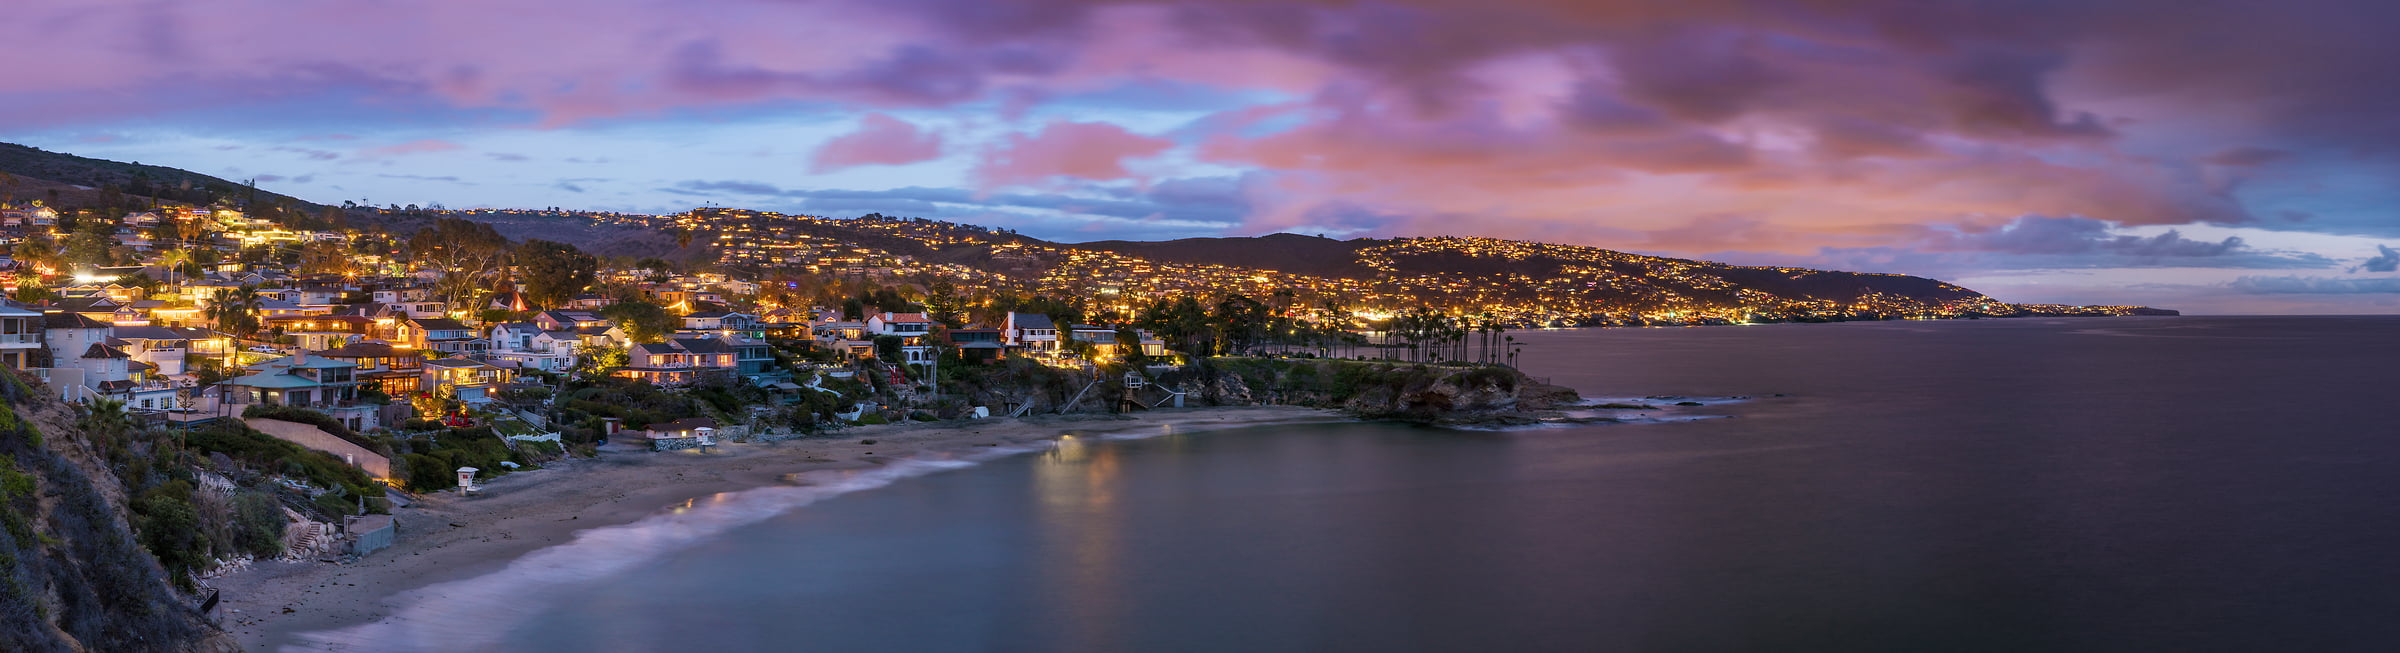 193 megapixels! A very high resolution, large-format VAST photo of a beach town at dusk with a sunset; panorama photograph created by Jim Tarpo in Laguna Beach, California